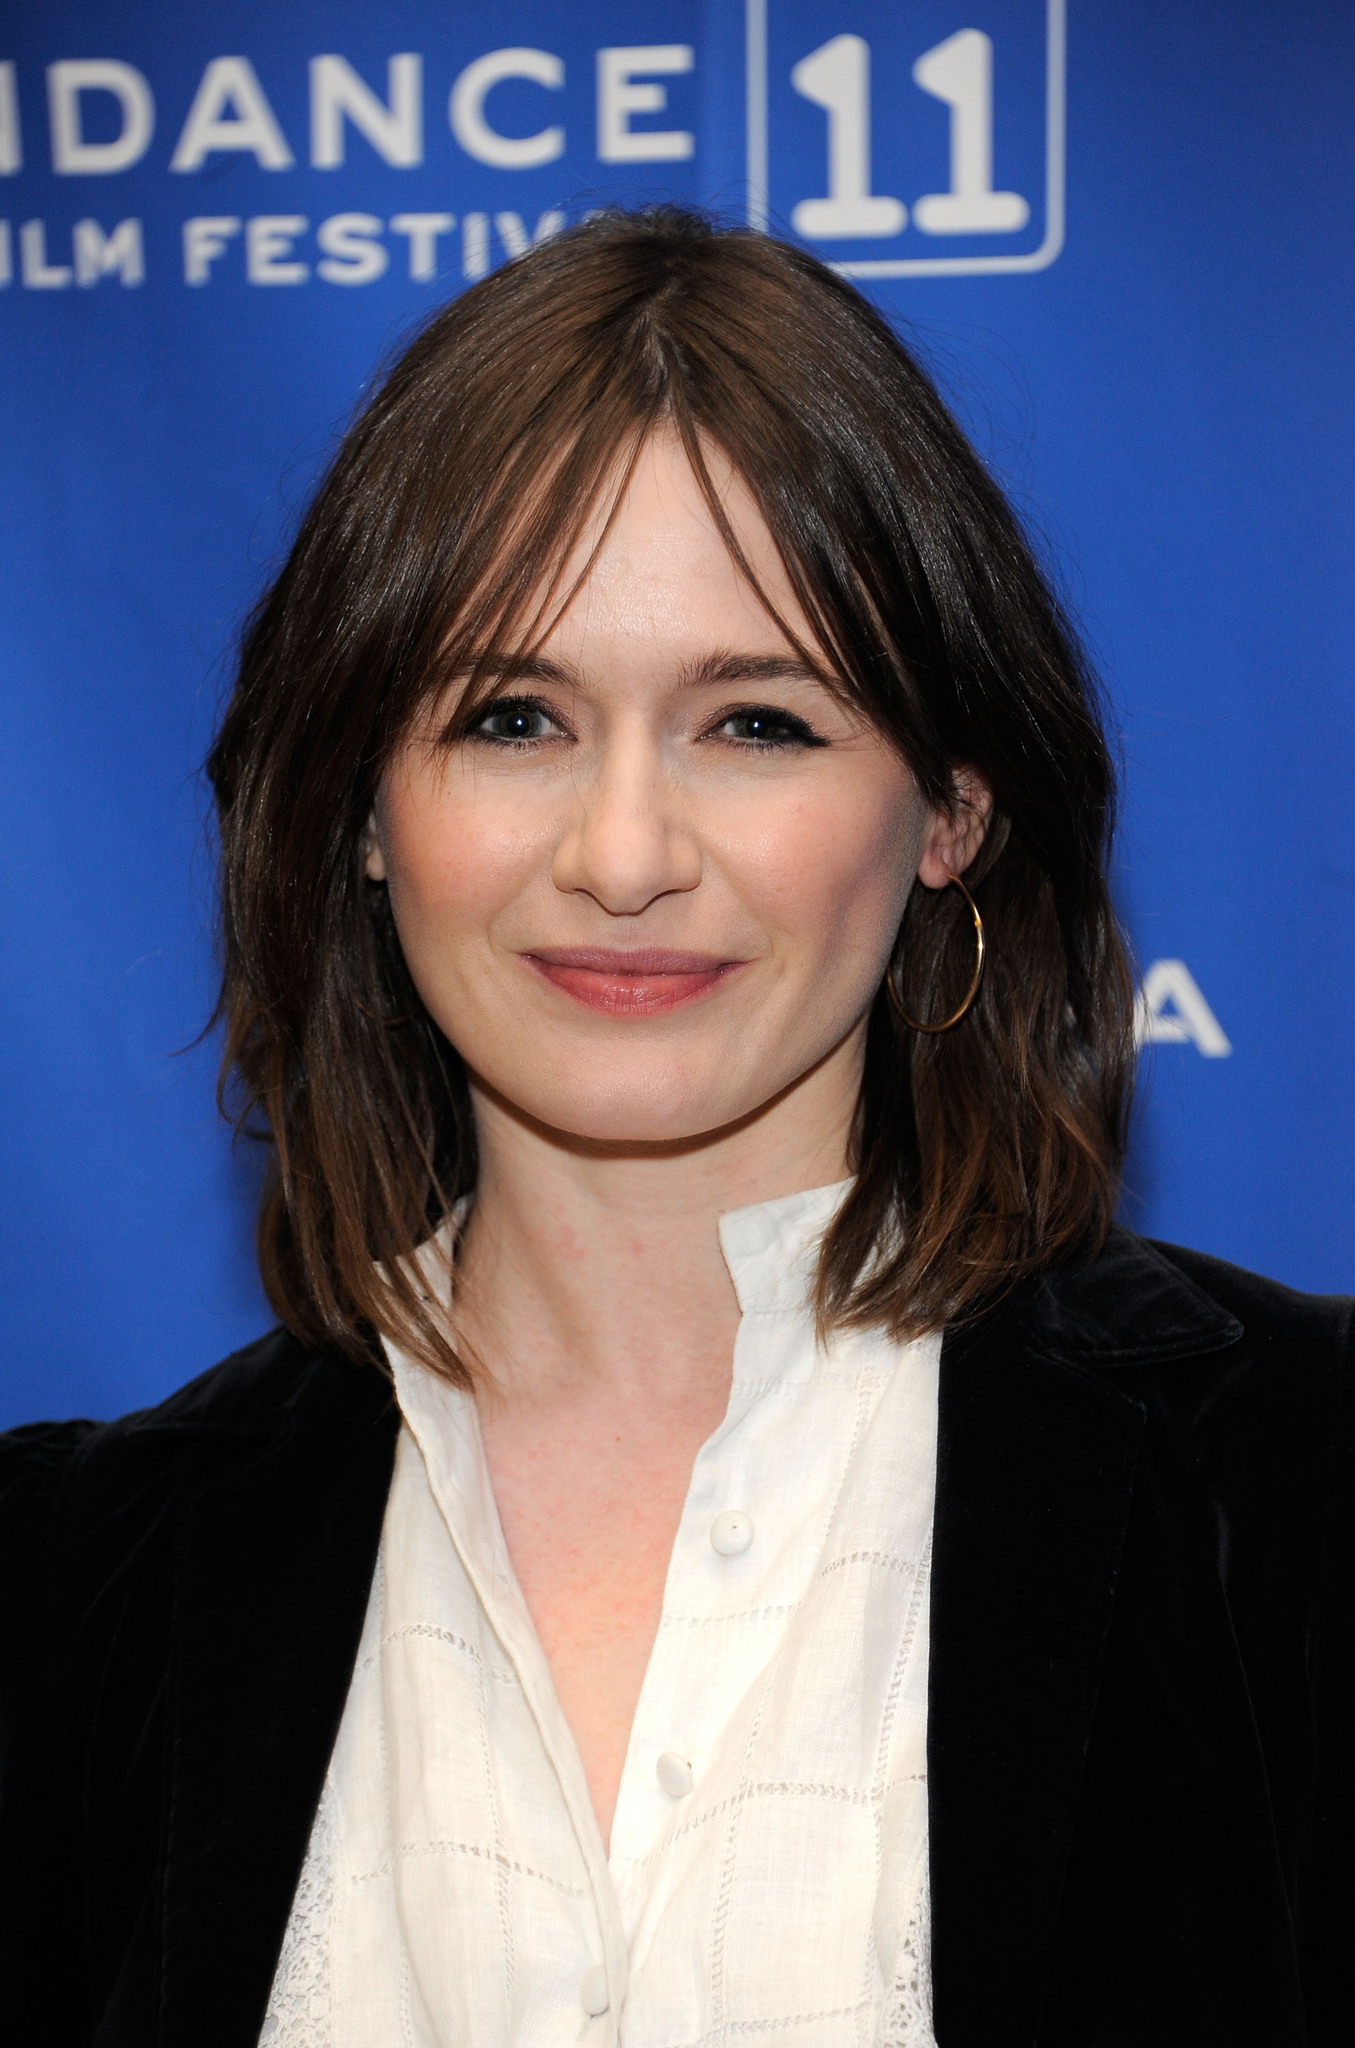 Pictures Emily Mortimer nudes (28 photo), Tits, Bikini, Instagram, cleavage 2018